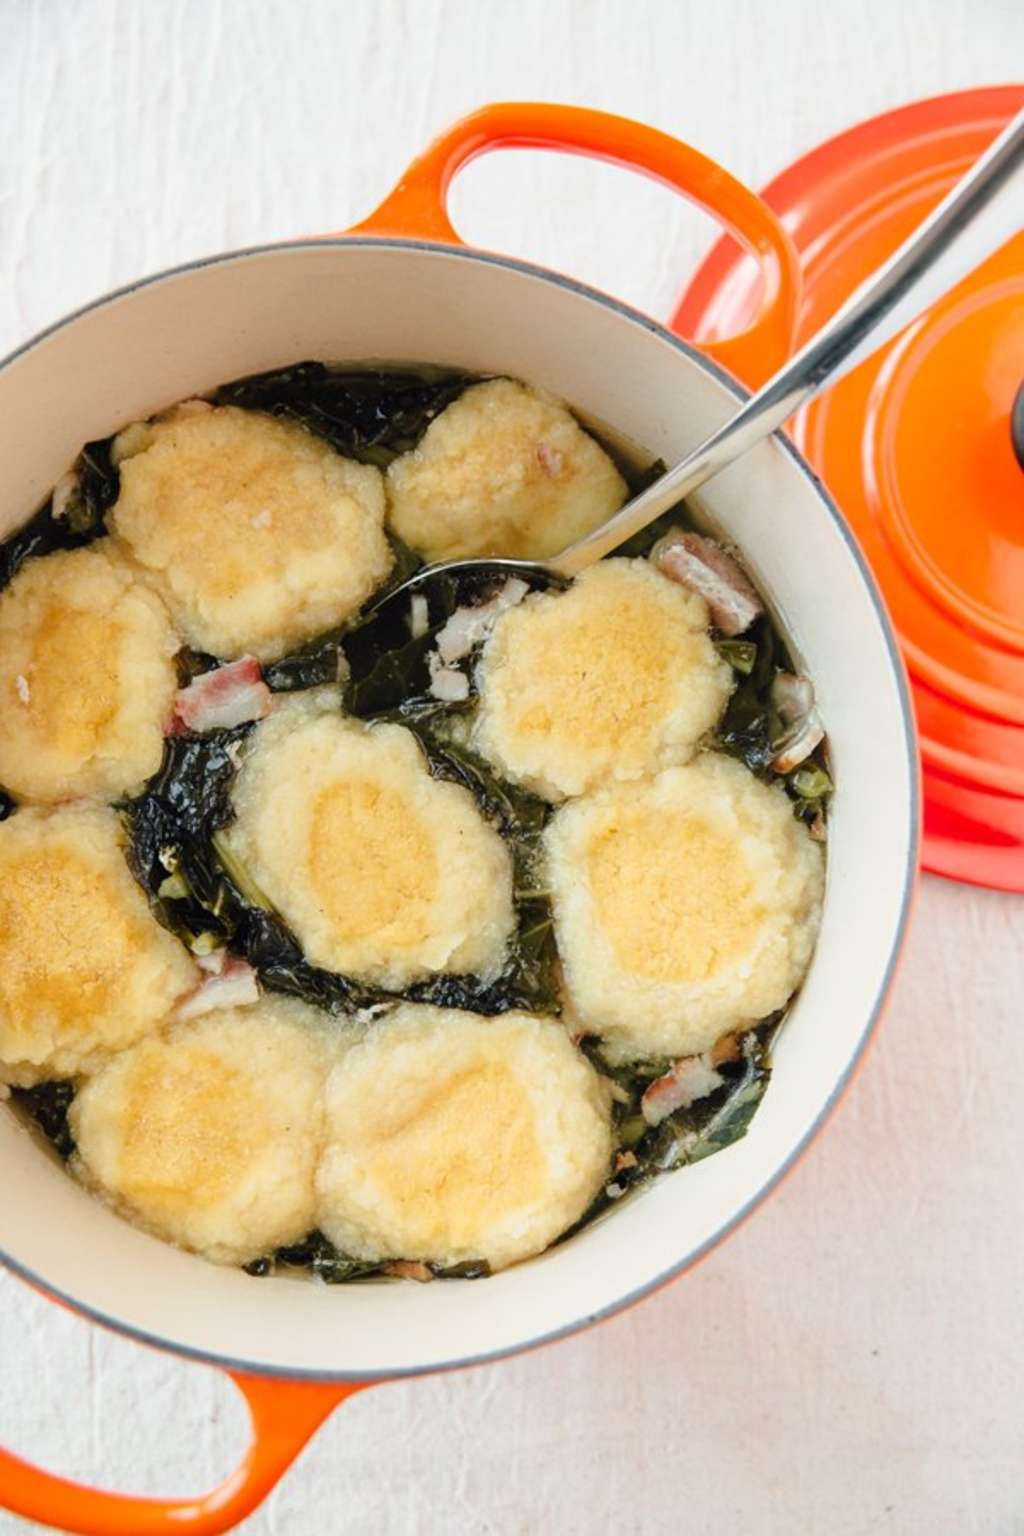 Recipe: Collard Greens with Pot Likker and Dumplings